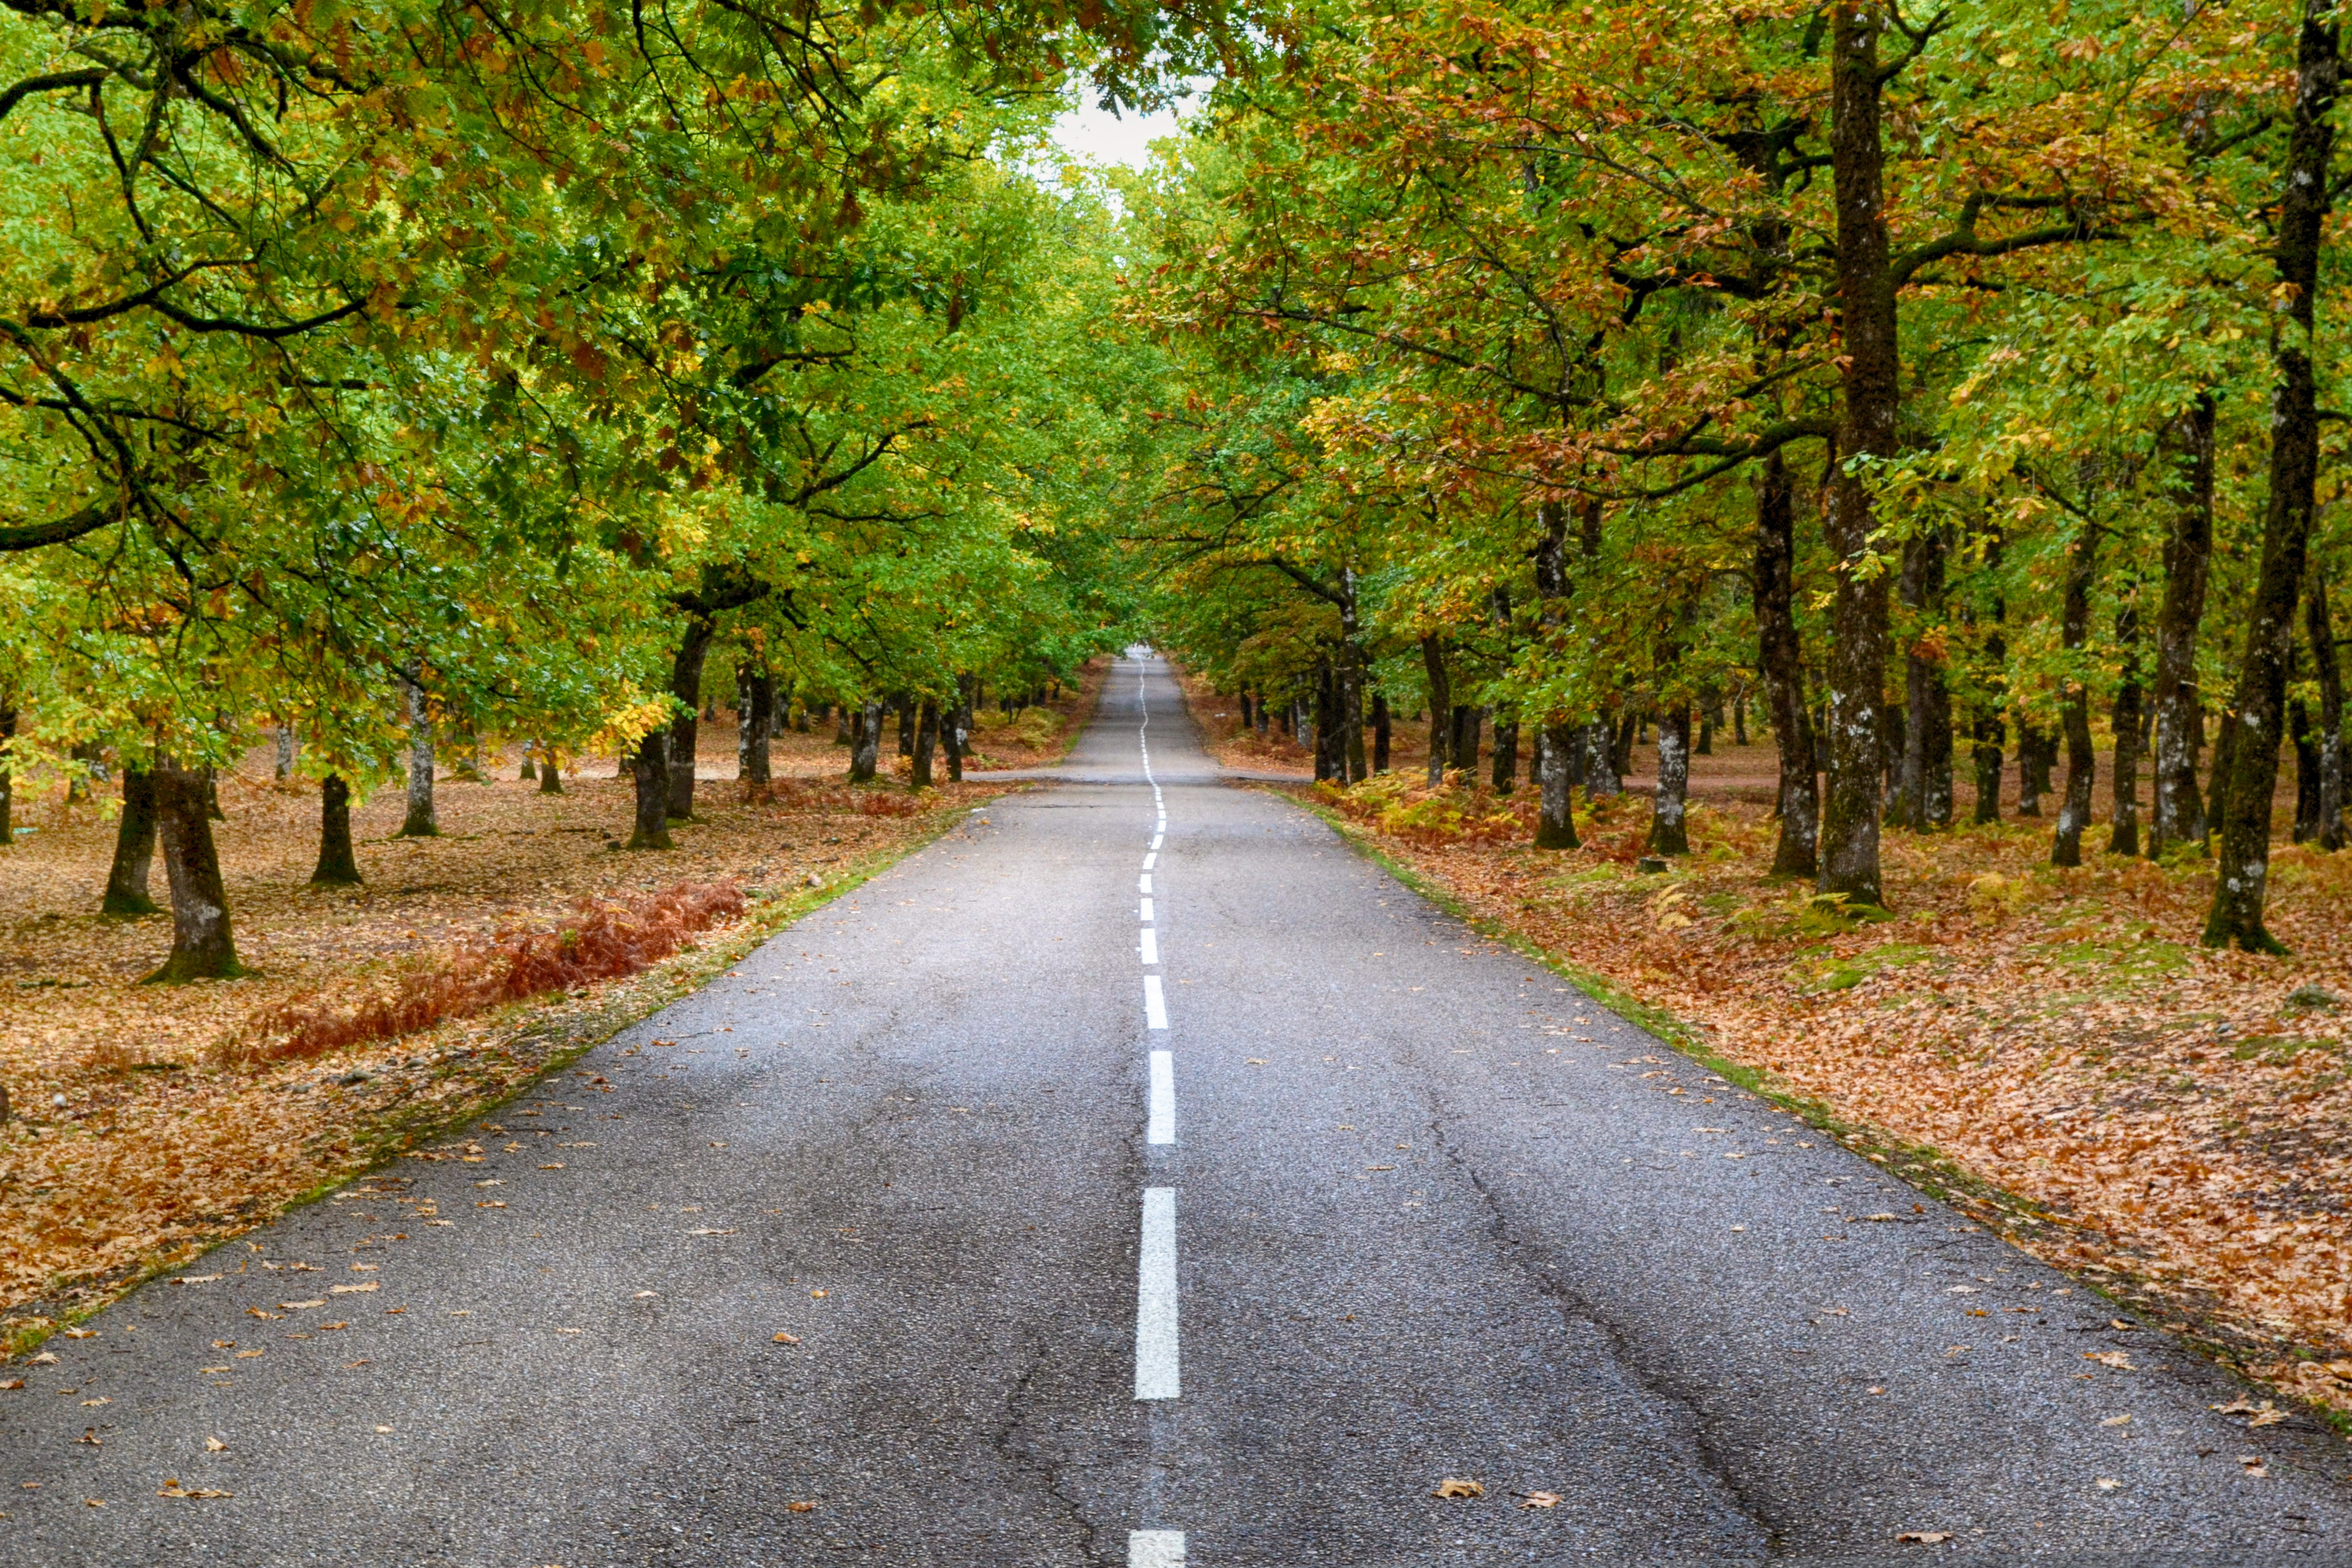 Grey Concrete Road in the Middle of Dried Leaves, Asphalt, Leaves, Way, Trees, HQ Photo